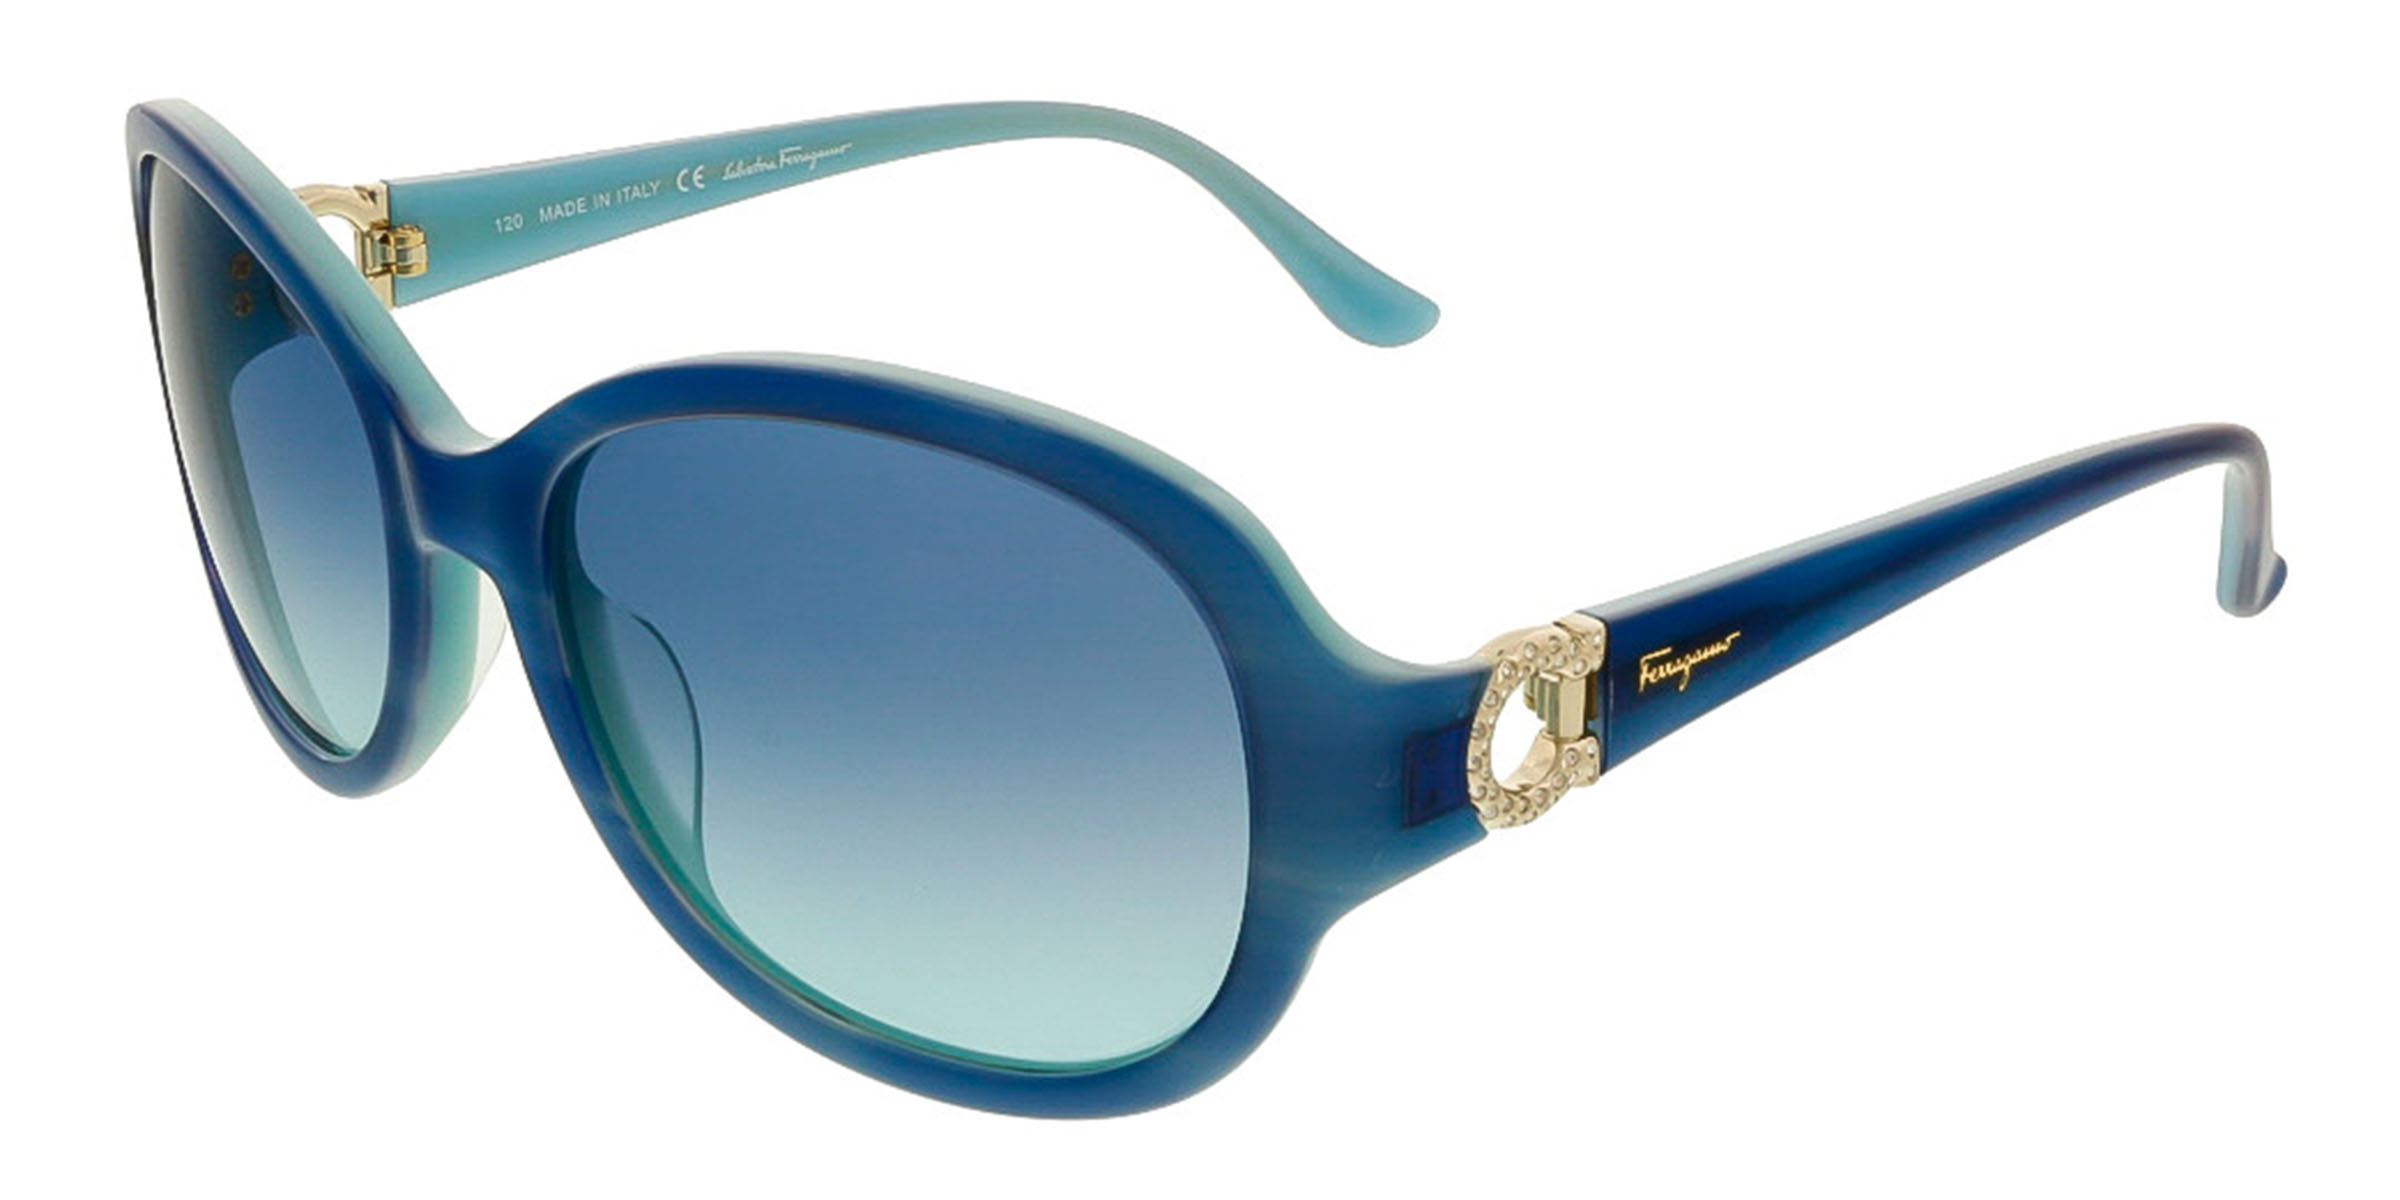 Salvatore Ferragamo SF703SR 440 Blue/Turquoise Oval Sunglasses